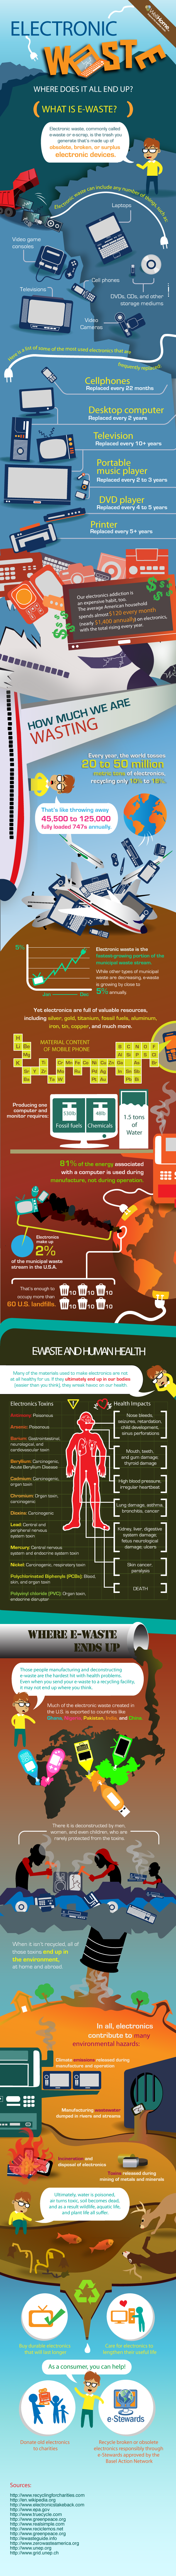 Electronic Waste- Where Does It All End Up?